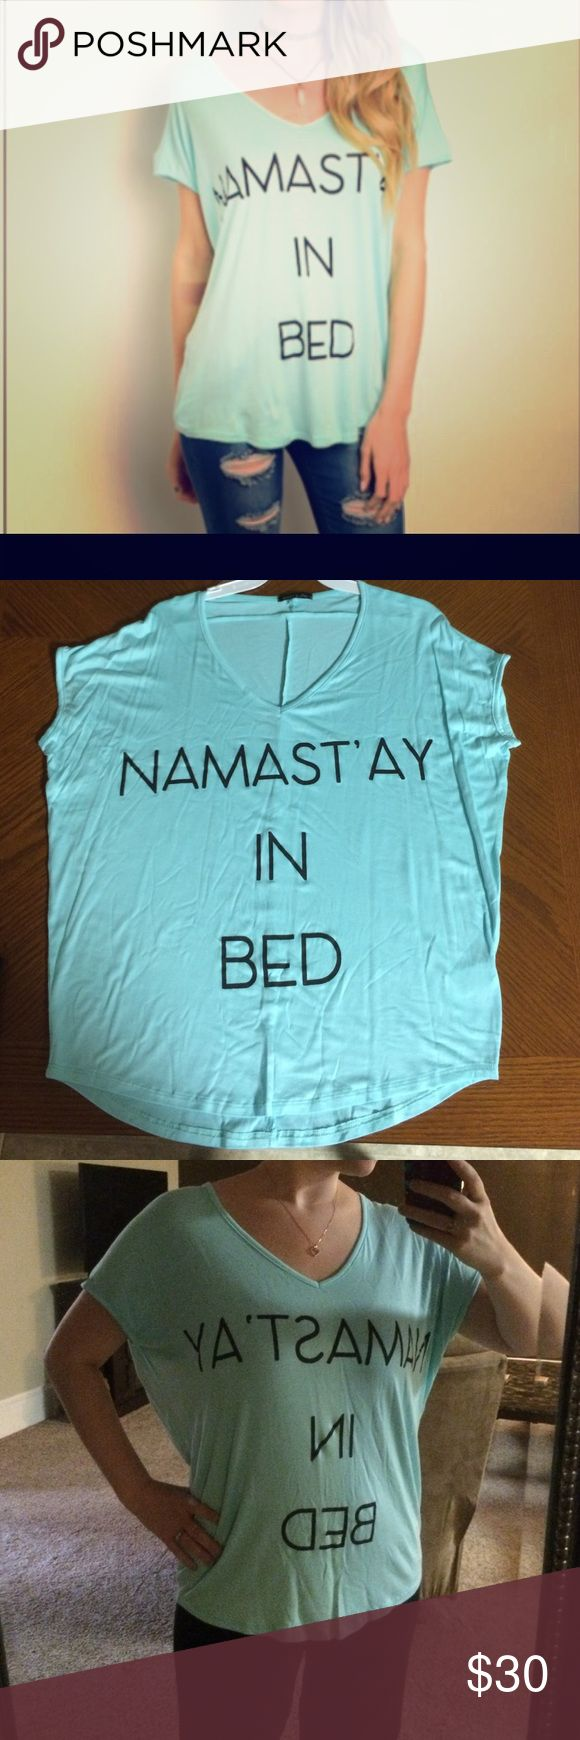 """Namast'ay in bed slouchy tee  """"Namast'ay in bed""""  teal colored slouchy tee shirt! So comfortable & incredibly flattering! I just love this shirt so much!  Fabric- 96% rayon & 4% spandex. Approximate flat measurements:  Small- length 27"""" width 21 1/2""""                         Medium- length 27"""" width 22 1/2""""                                Large- length 28 width 23 1/2"""" Tops Tees - Short Sleeve"""